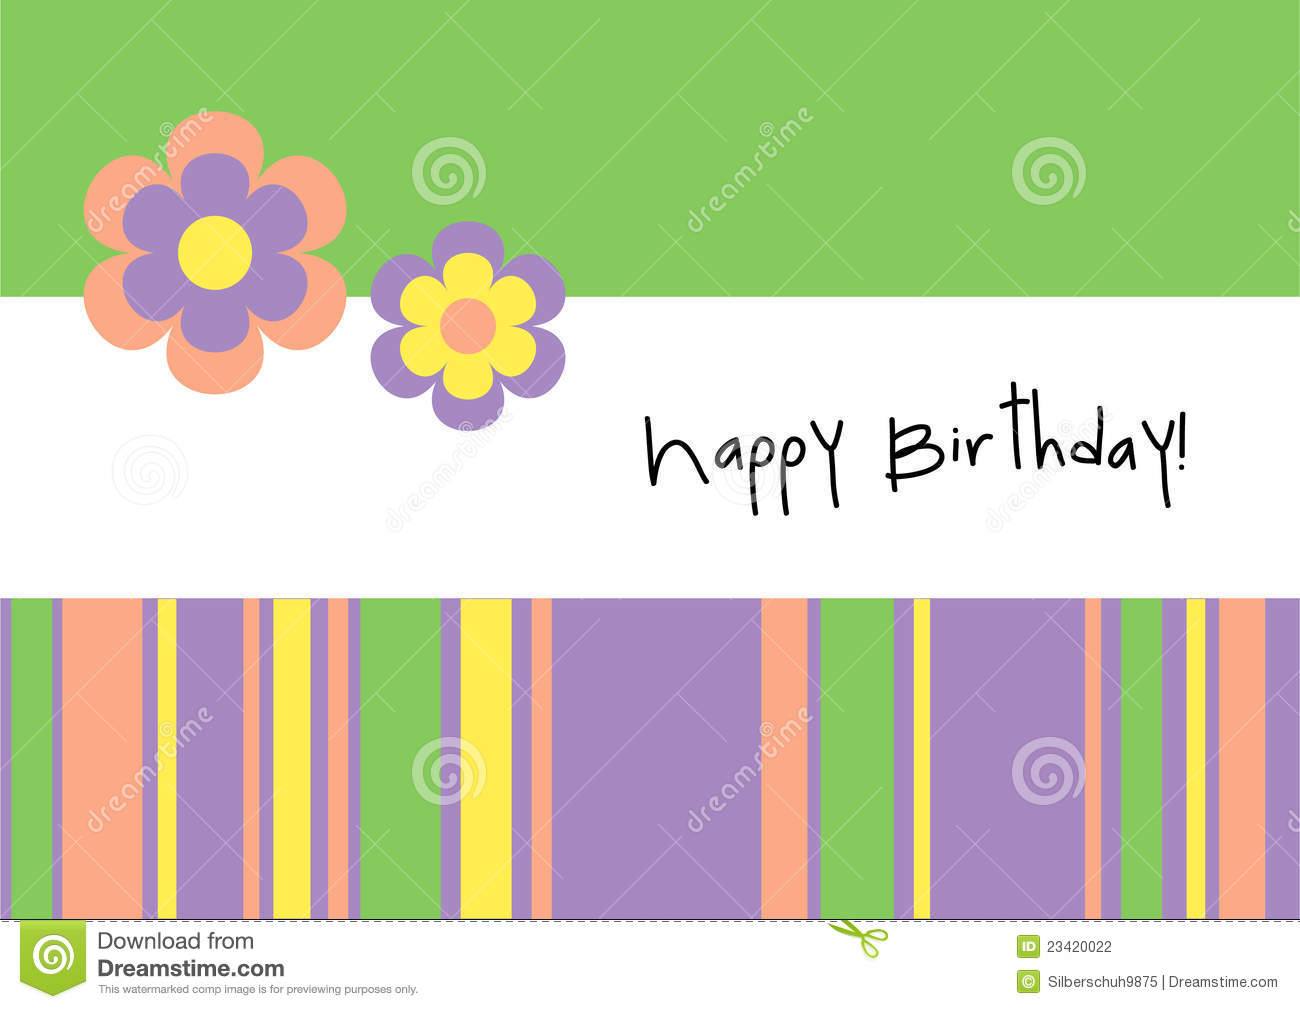 Happy birthday card templates word happy holiday greeting cards templates 2015 kristyandbryce Image collections